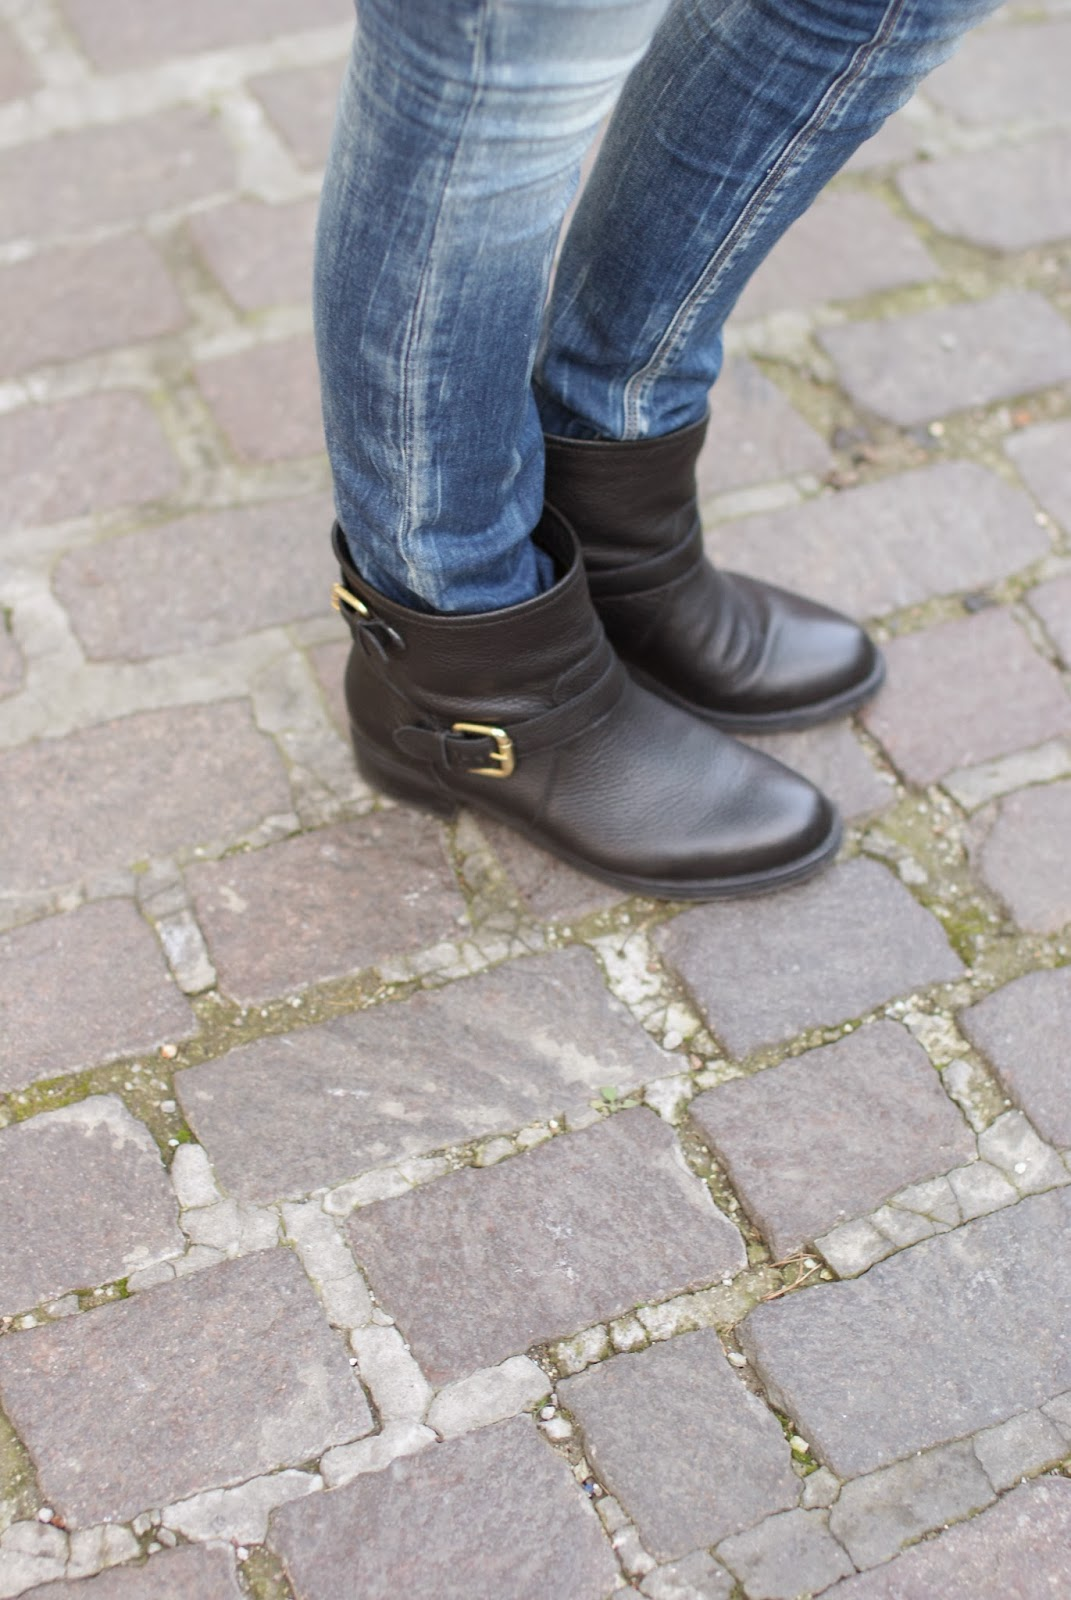 Replay jeans, Carmens Padova biker boots, Fashion and Cookies, fashion blogger